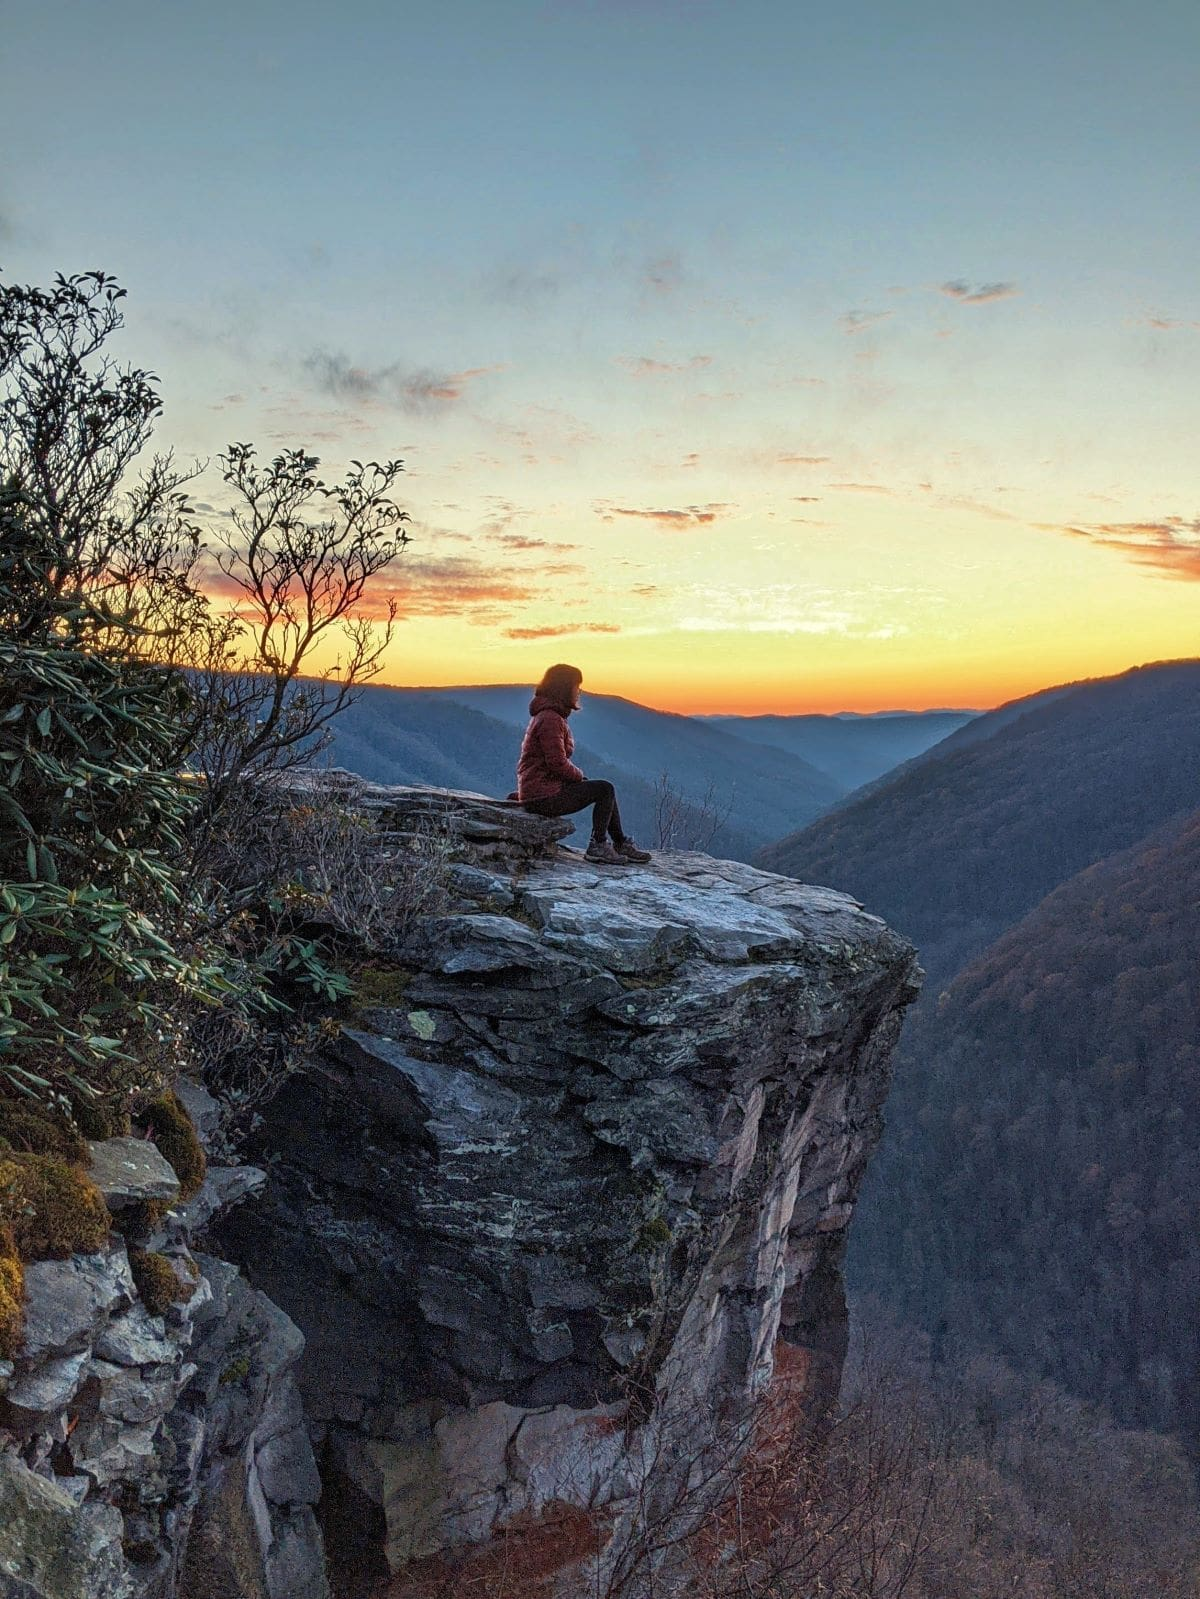 me sitting on a ledge overlooking some mountains at sunset